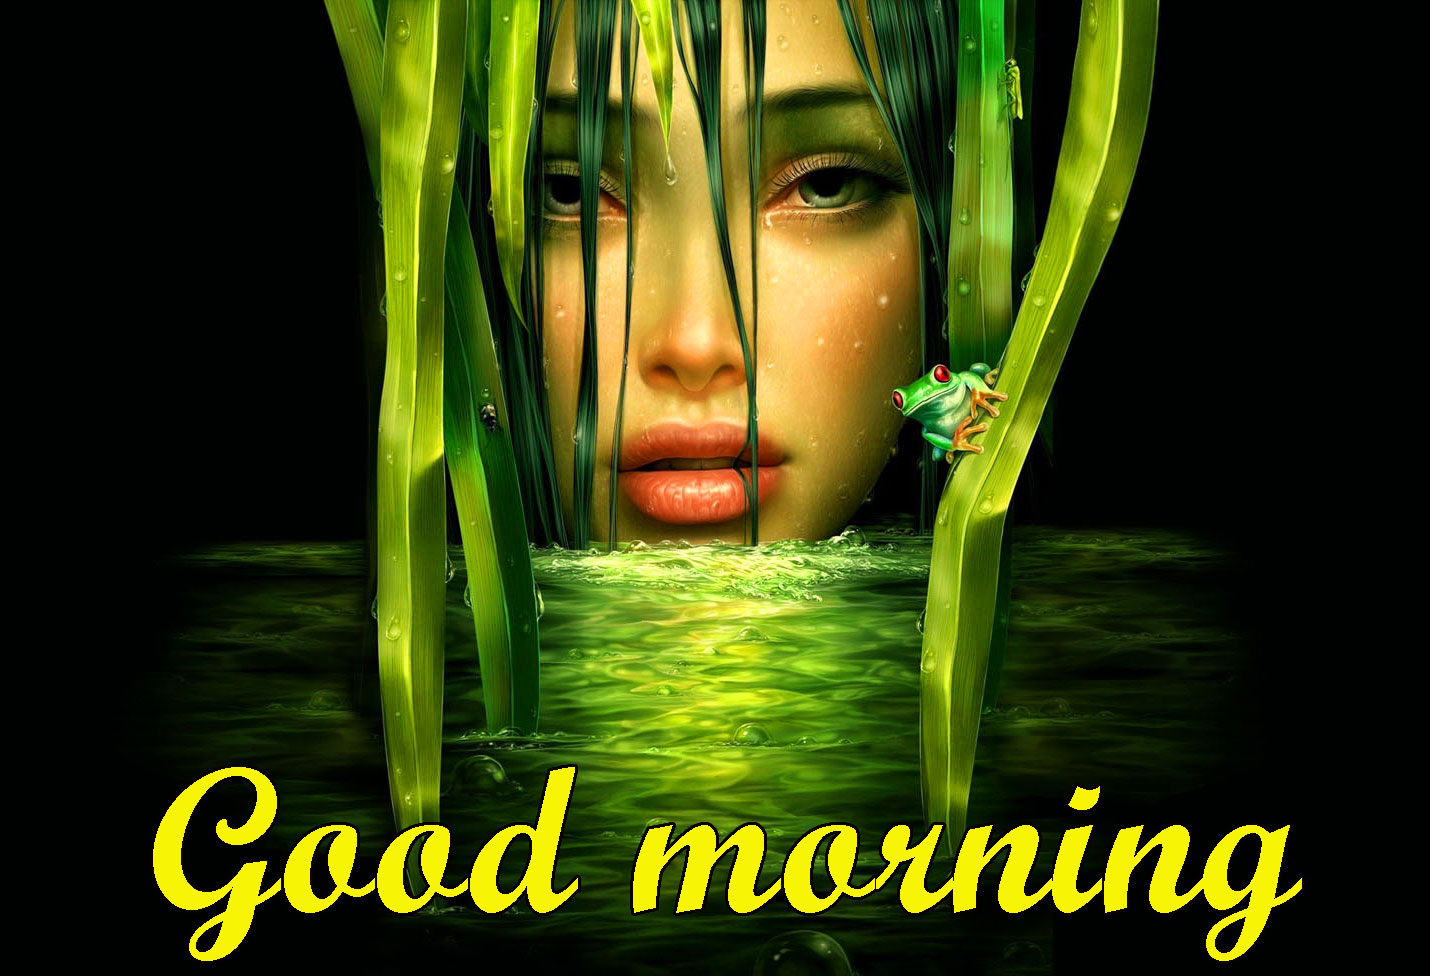 BEAUTIFUL 3D GOOD MORNING IMAGES WALLPAPER PICS WITH BEAUTIFUL GIRL